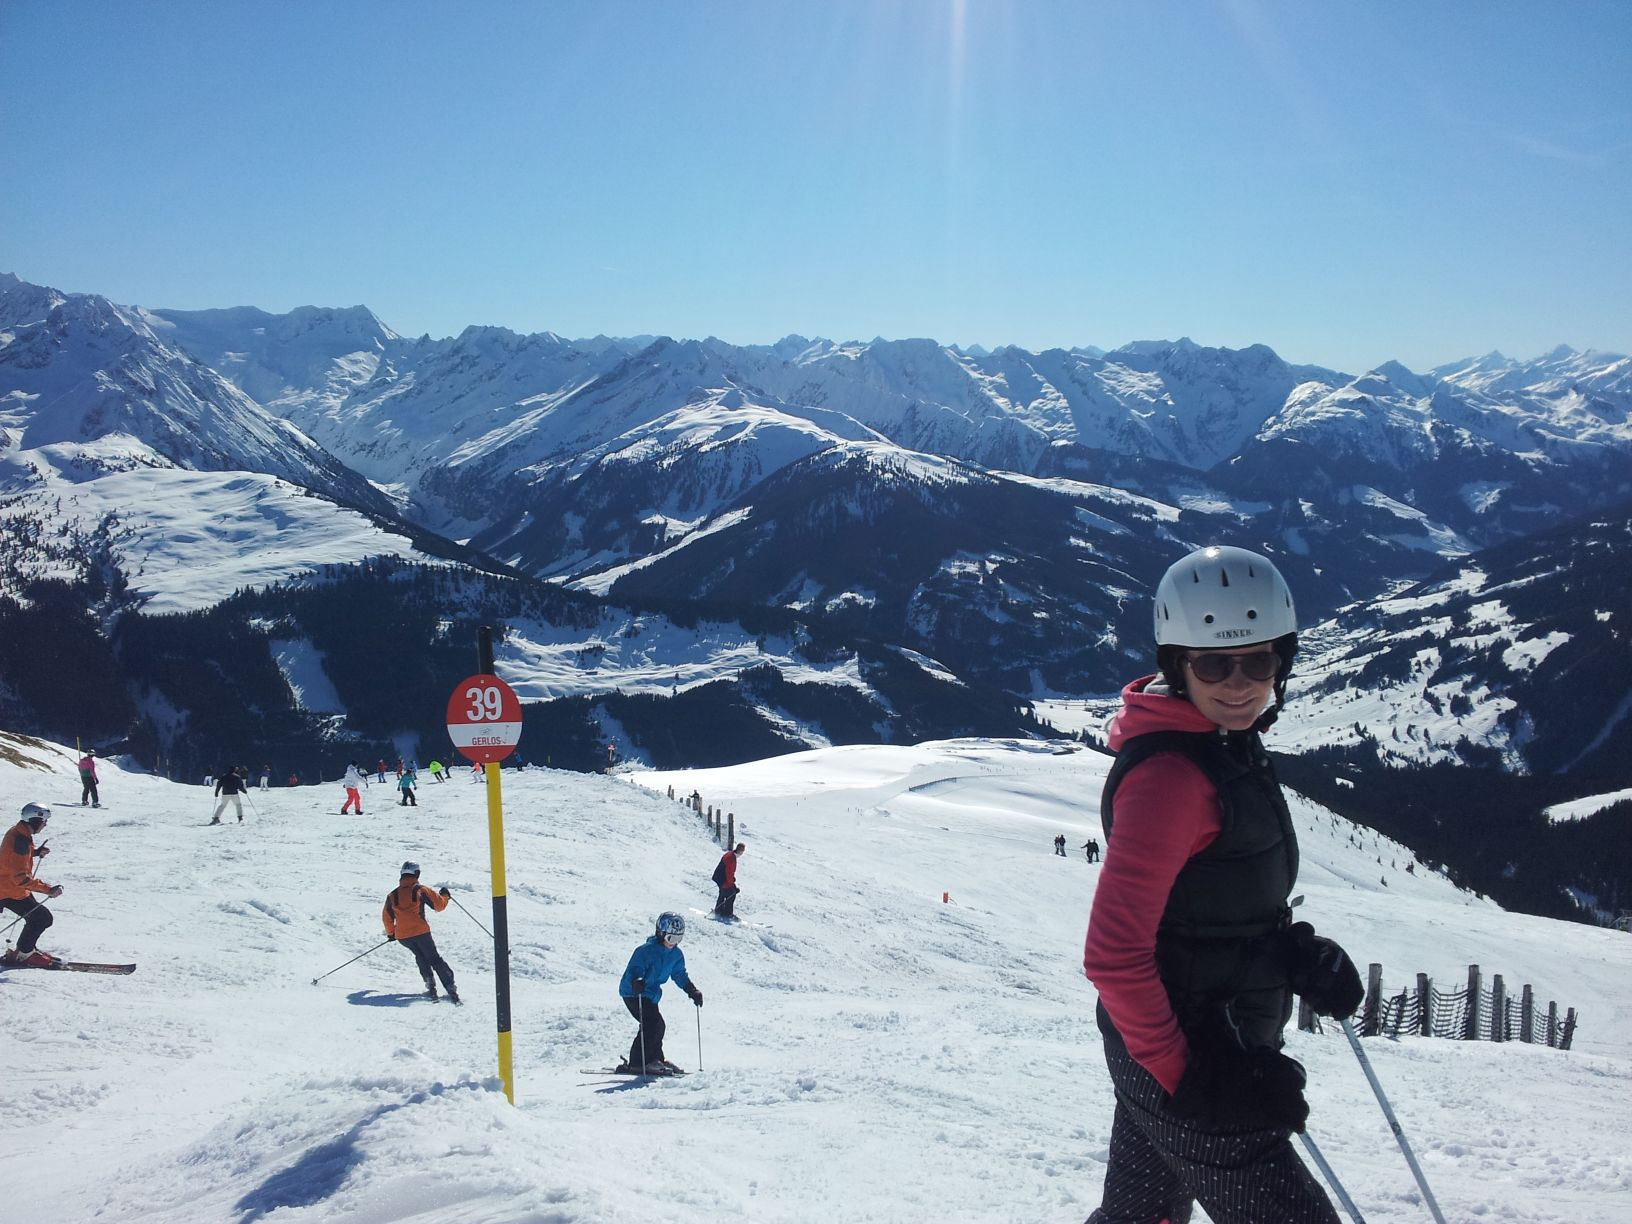 wintersport met kindjes (4).jpg